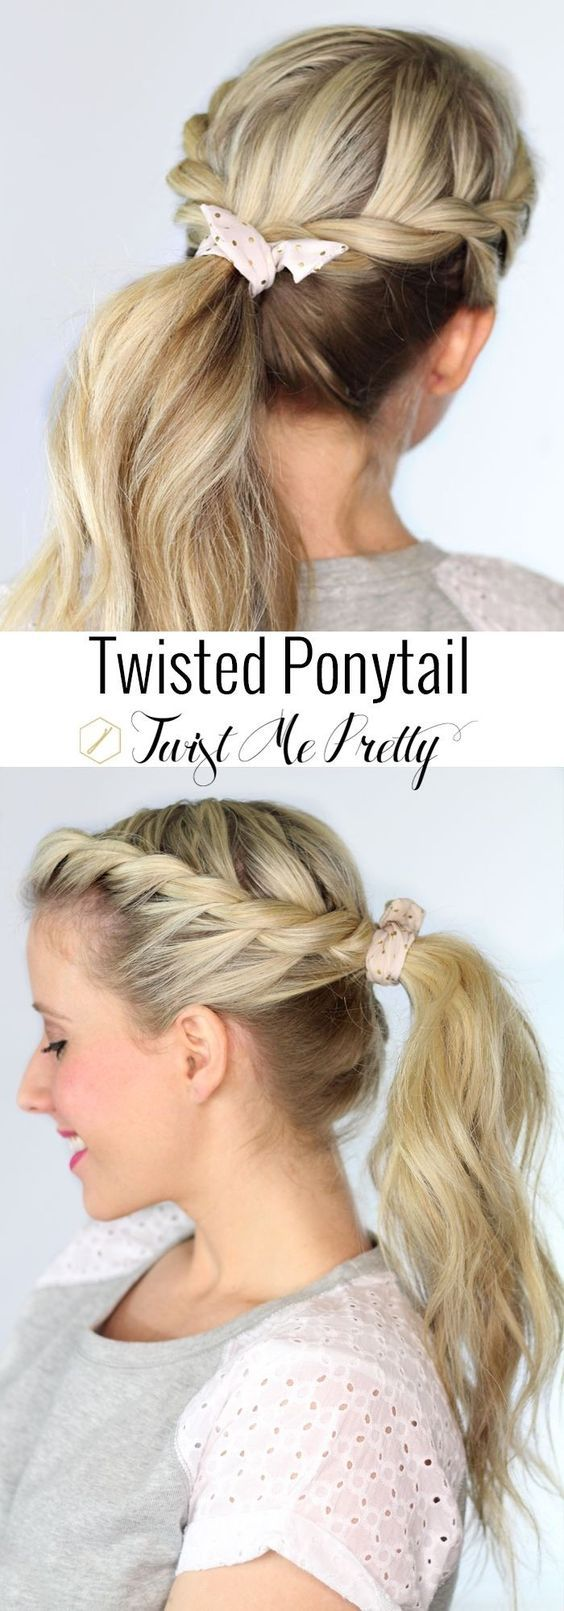 best 25+ twisted ponytail ideas on pinterest | twisted braid